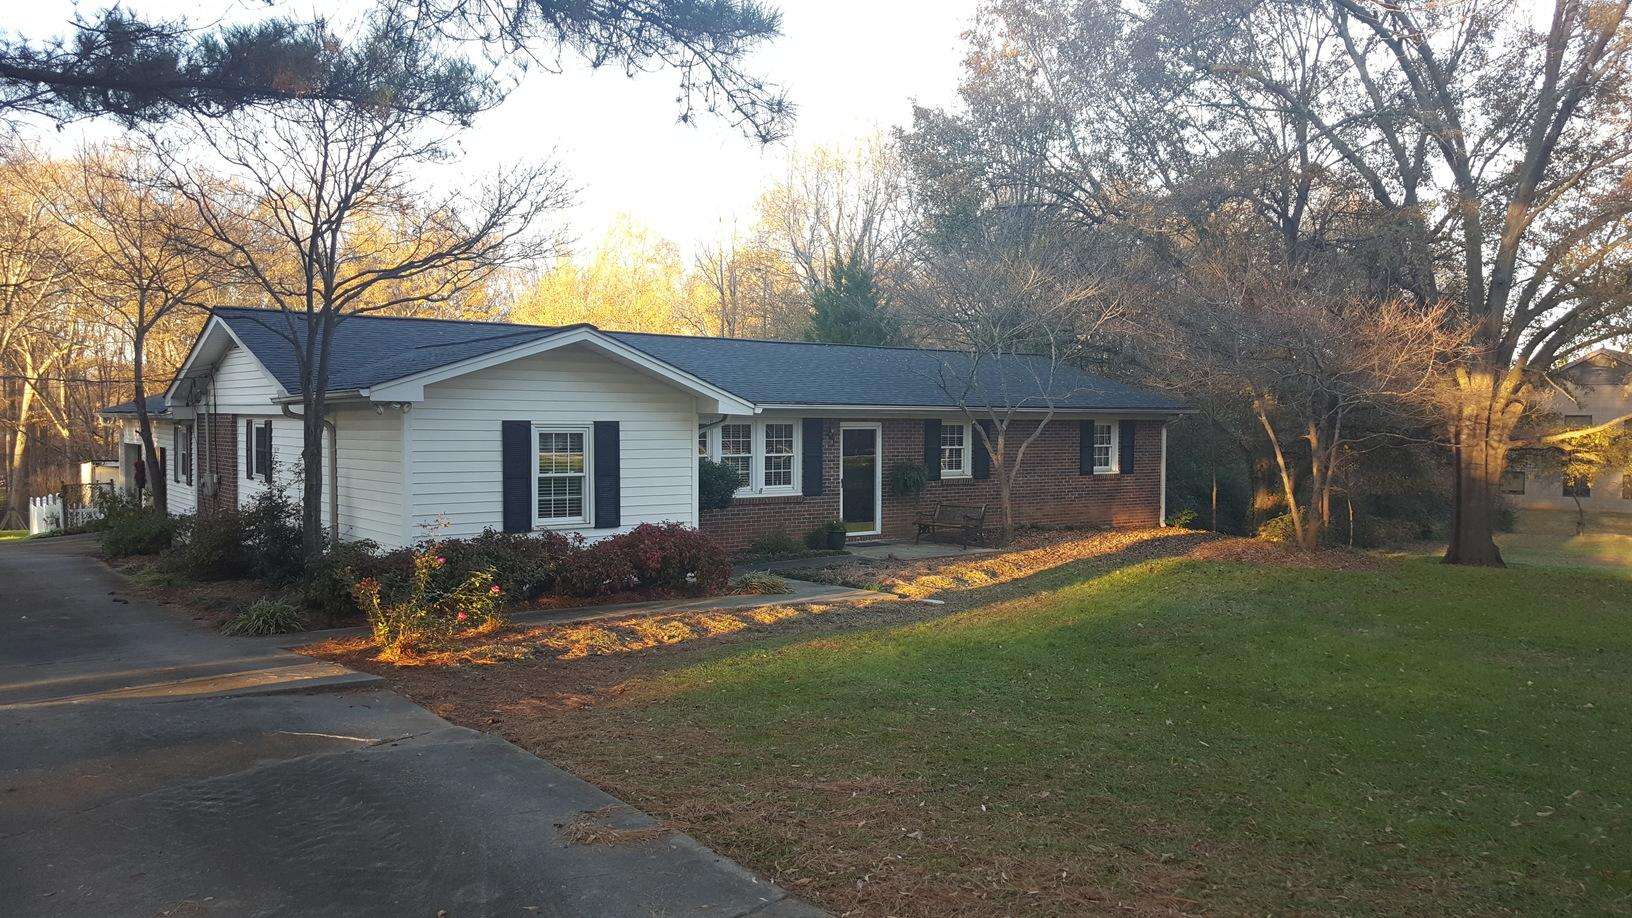 New Roof Replacement near Mauldin, SC